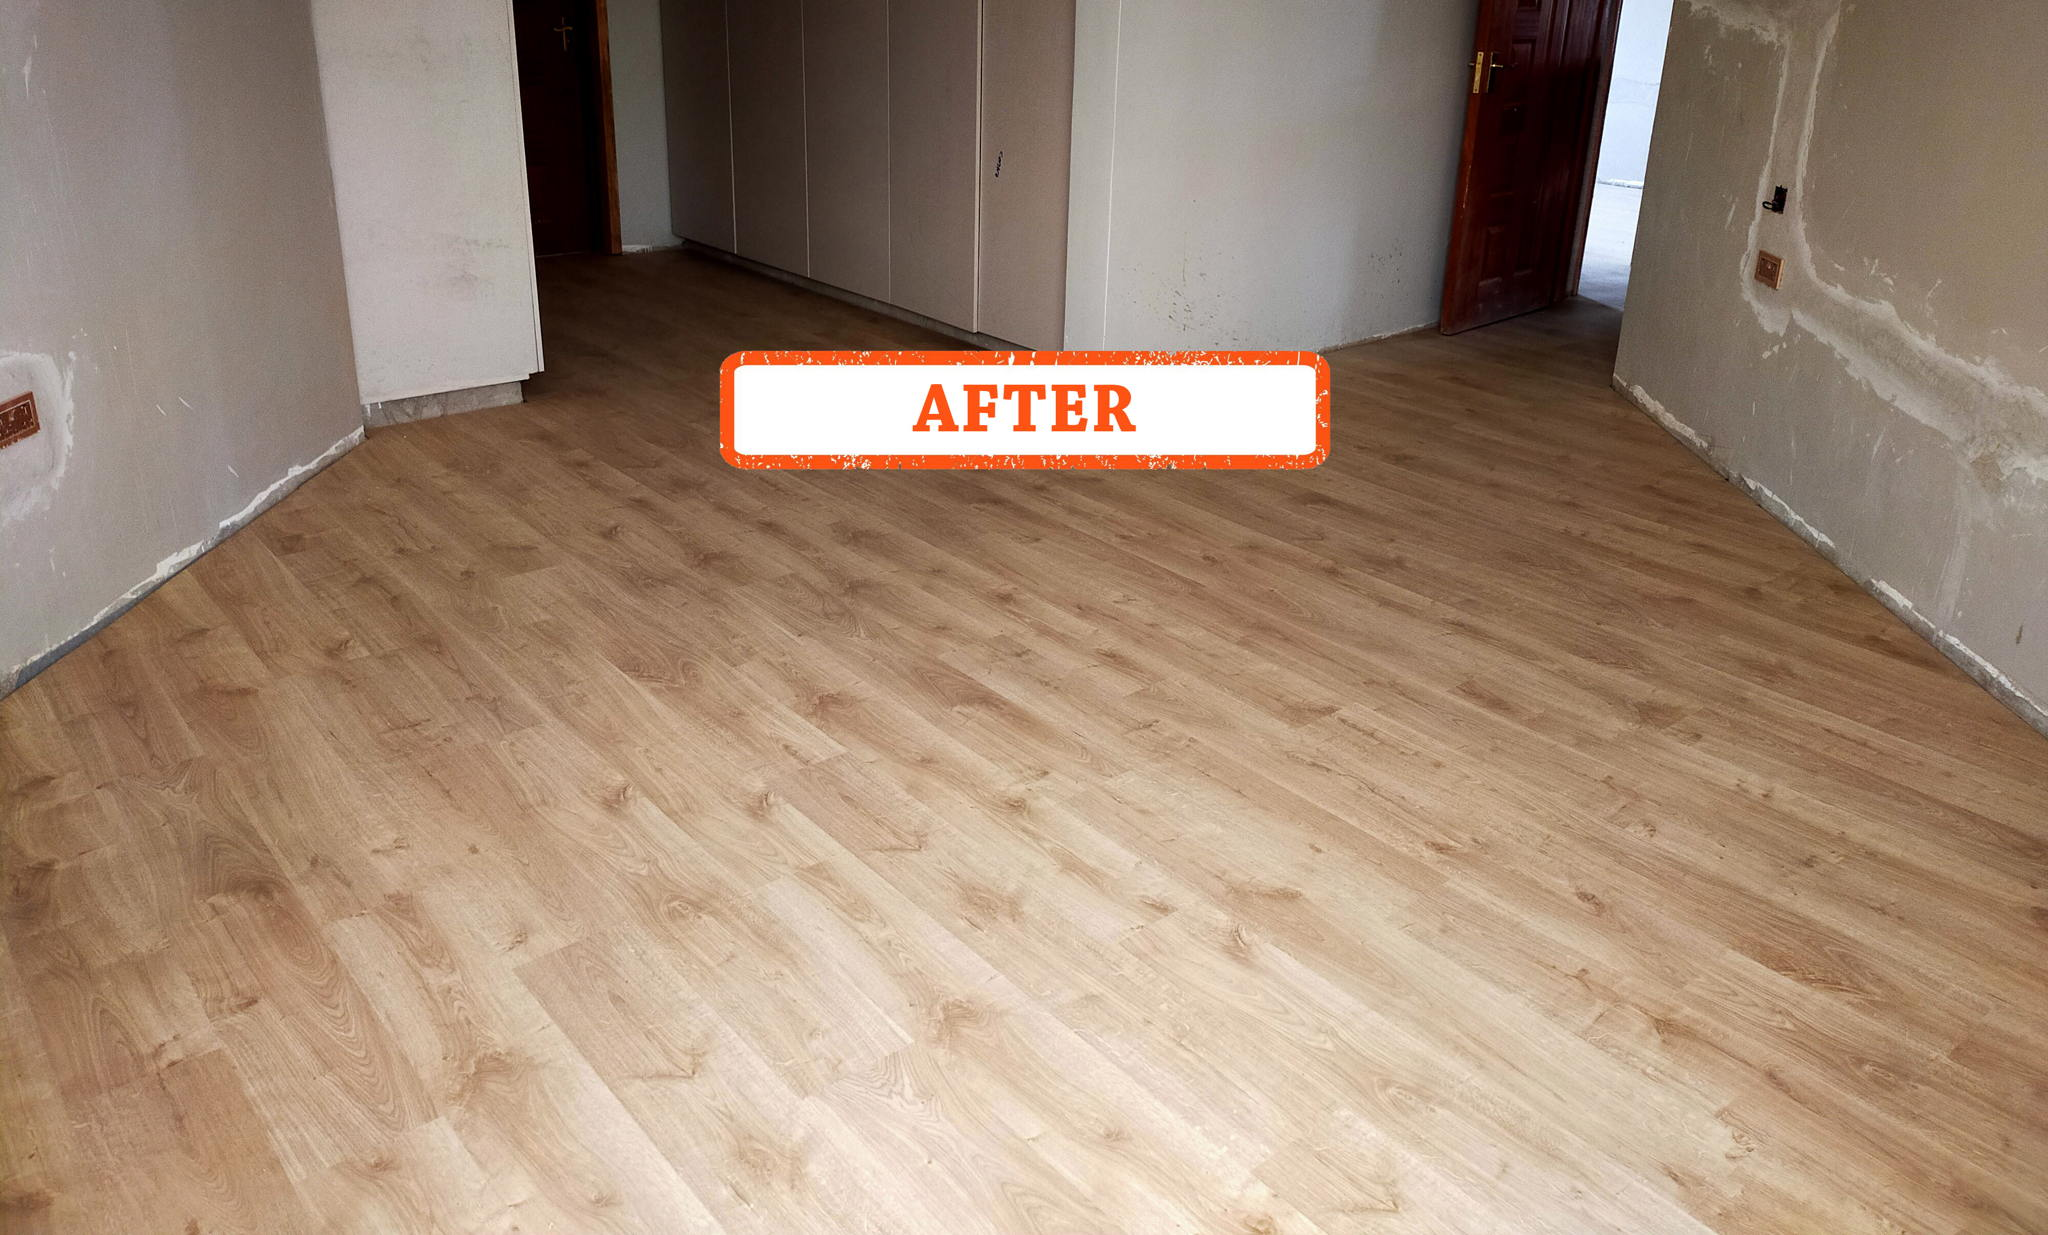 Home transformation ideas, how the right floor can change a house into a home.